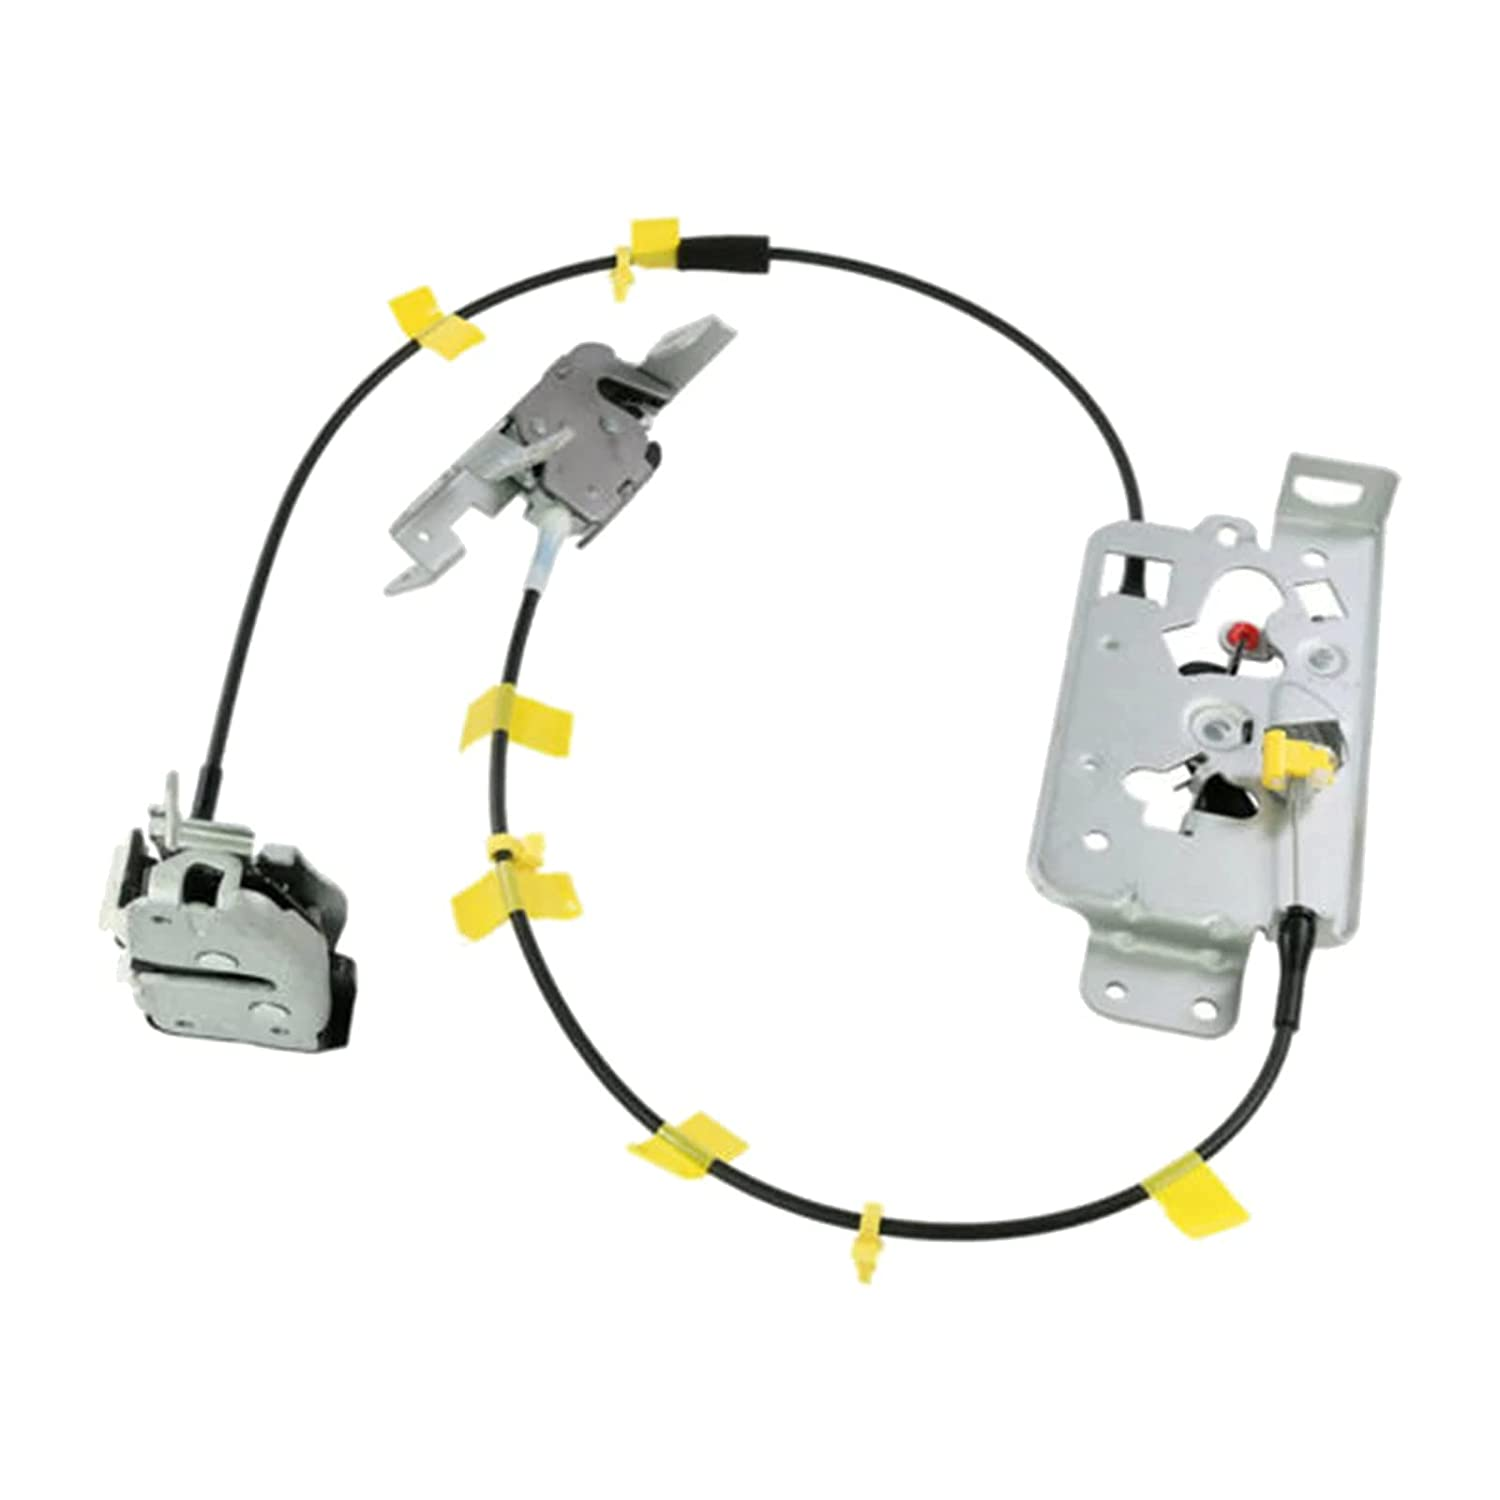 WMLBK Rear Left Door Lock Latch Cable Max 66% OFF Ford F150 Regular store for XL 2004-2008